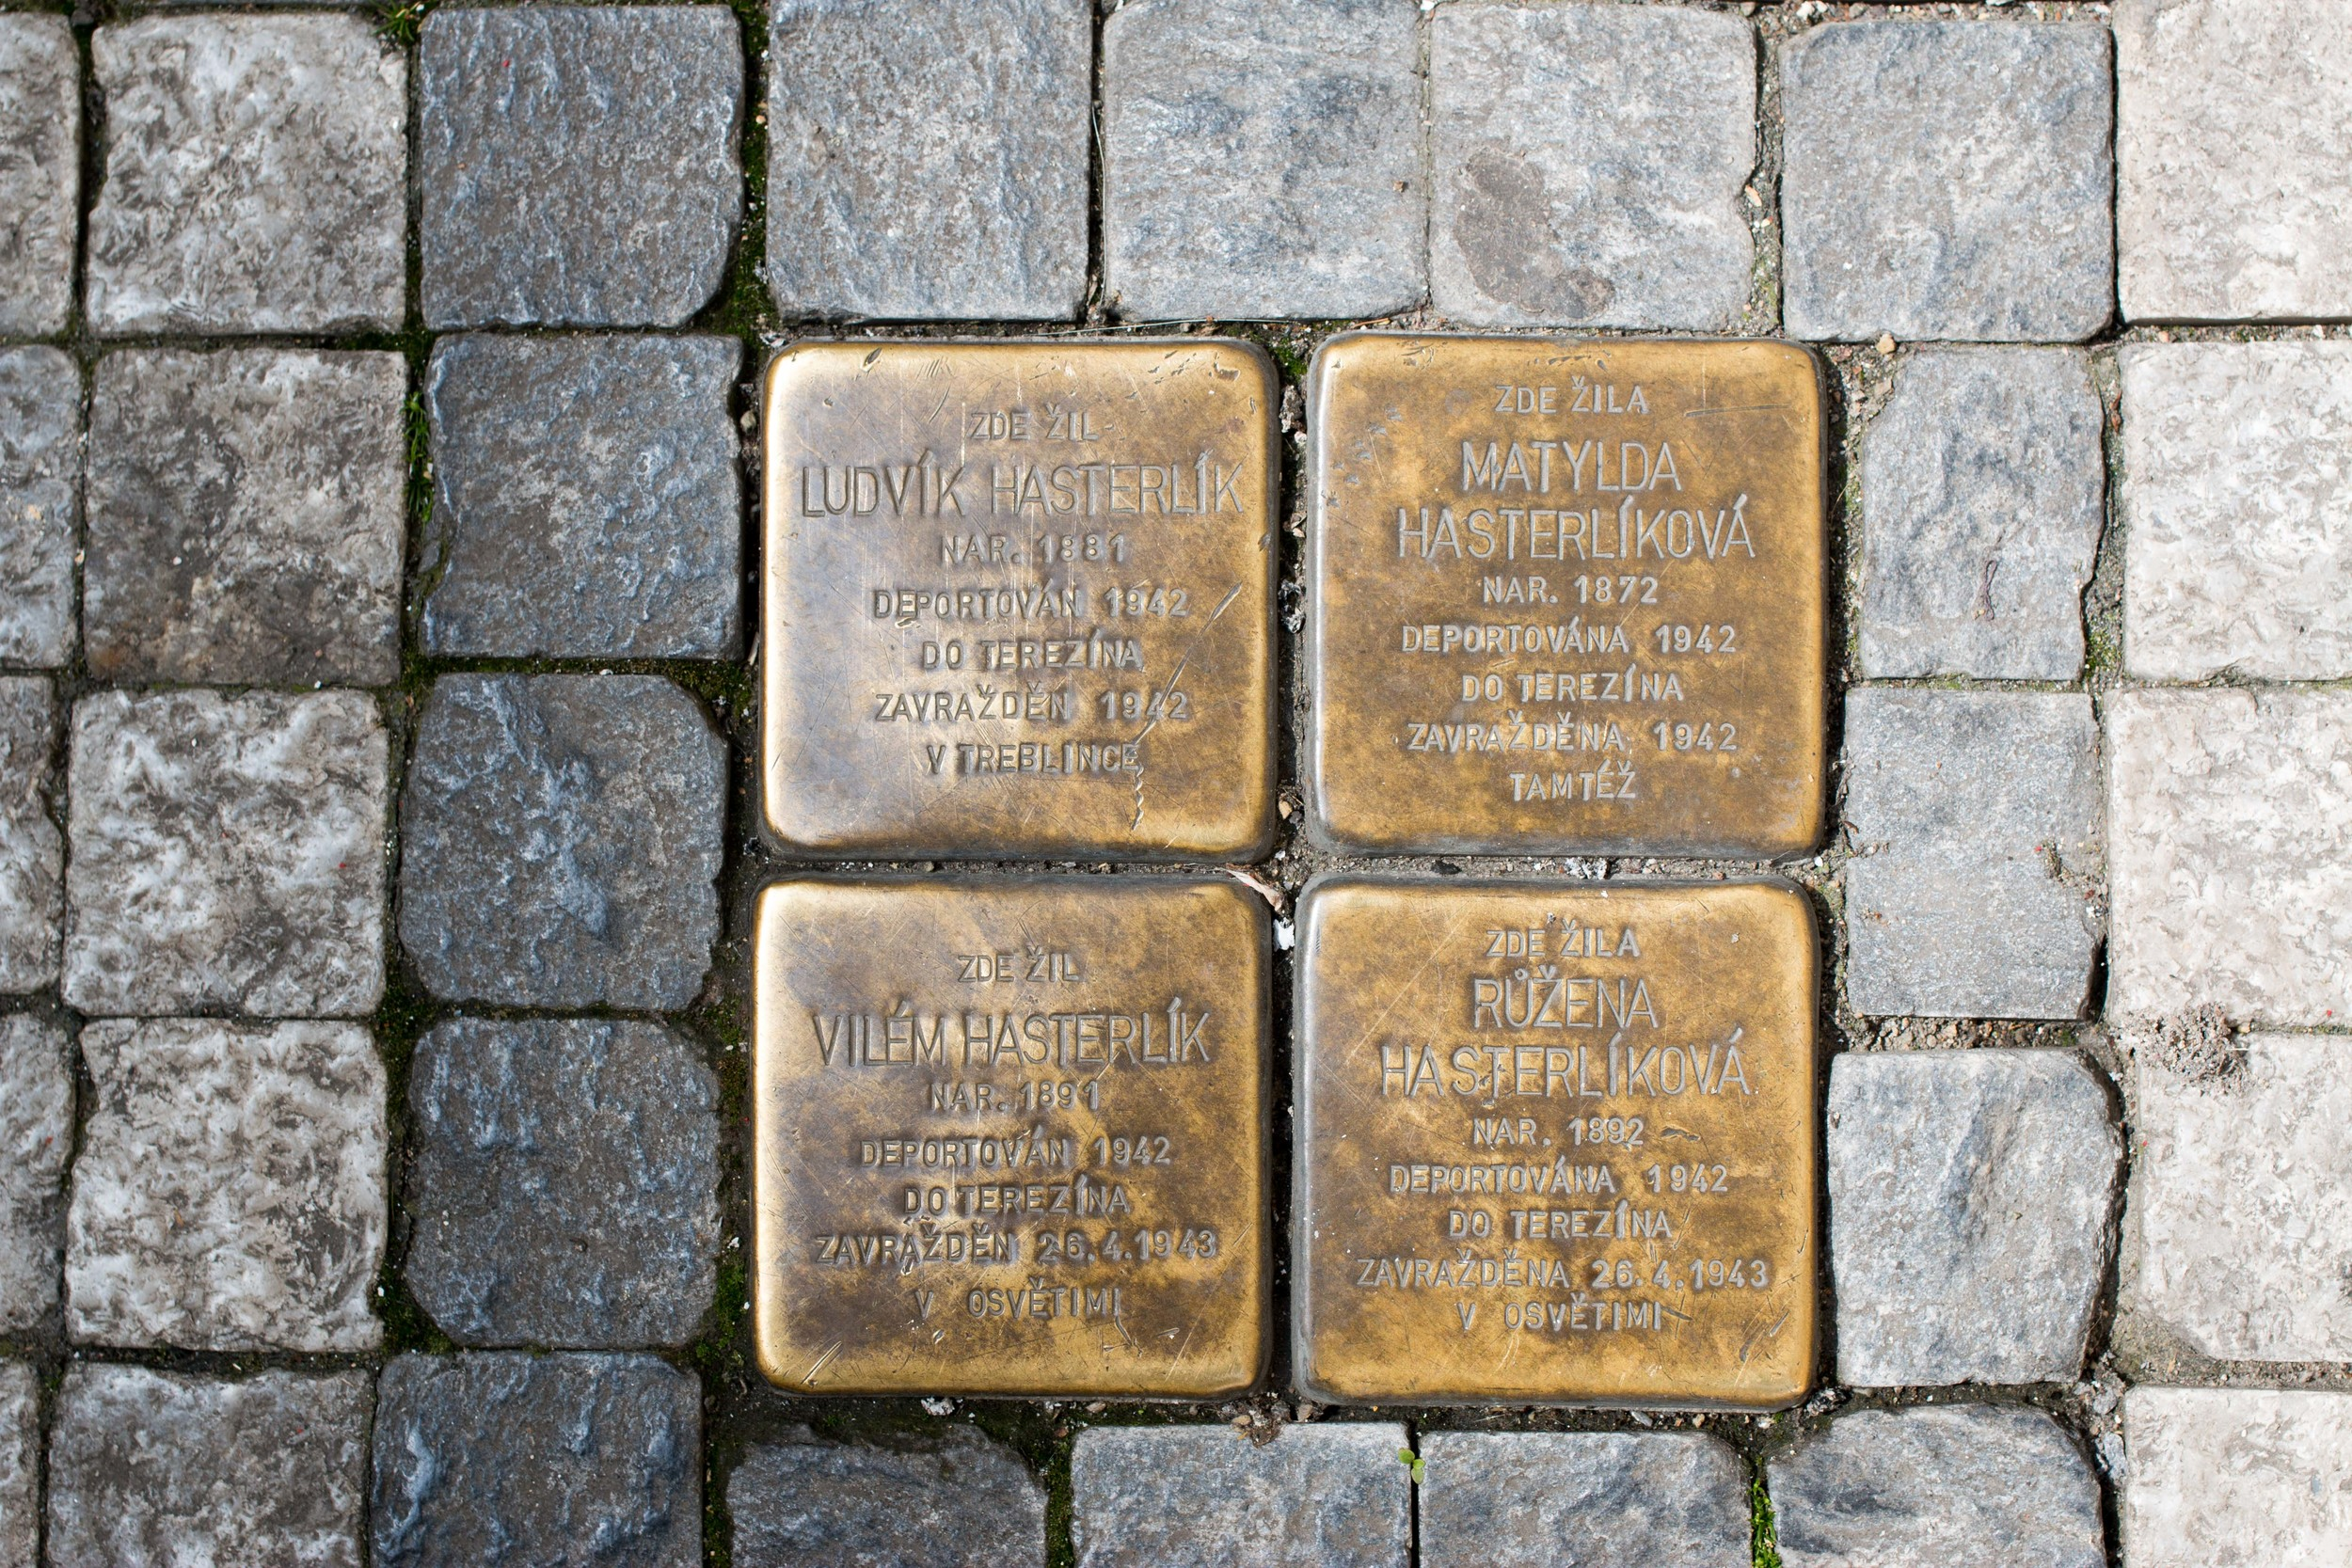 Prague. Two Brothers and their wives deported in 1942 (top) and 1943 (bottom) to Theresenstadt. One brother was then sent to Treblinka where he was murdered in  1942, while his wife was murdered at Theresenstadt. The younger brother and his wife were later sent to Auschwitz and killed in 1943.